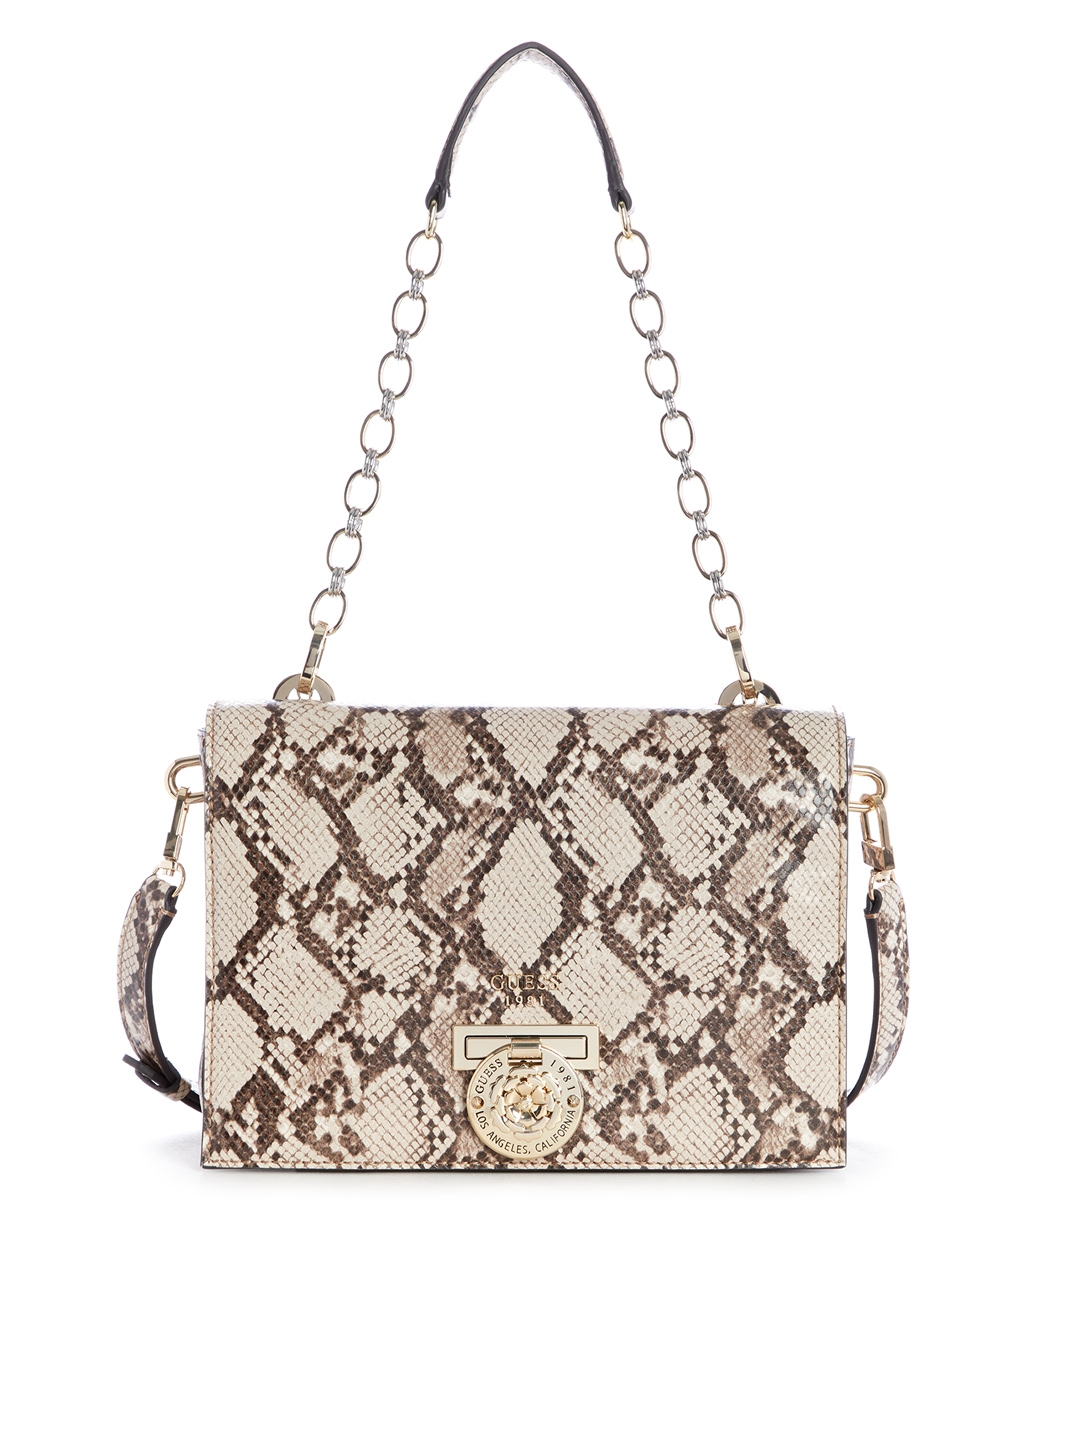 Buy GUESS Beige   Brown Snakeskin Print Shoulder Bag With Sling ... 7bef03fd32a